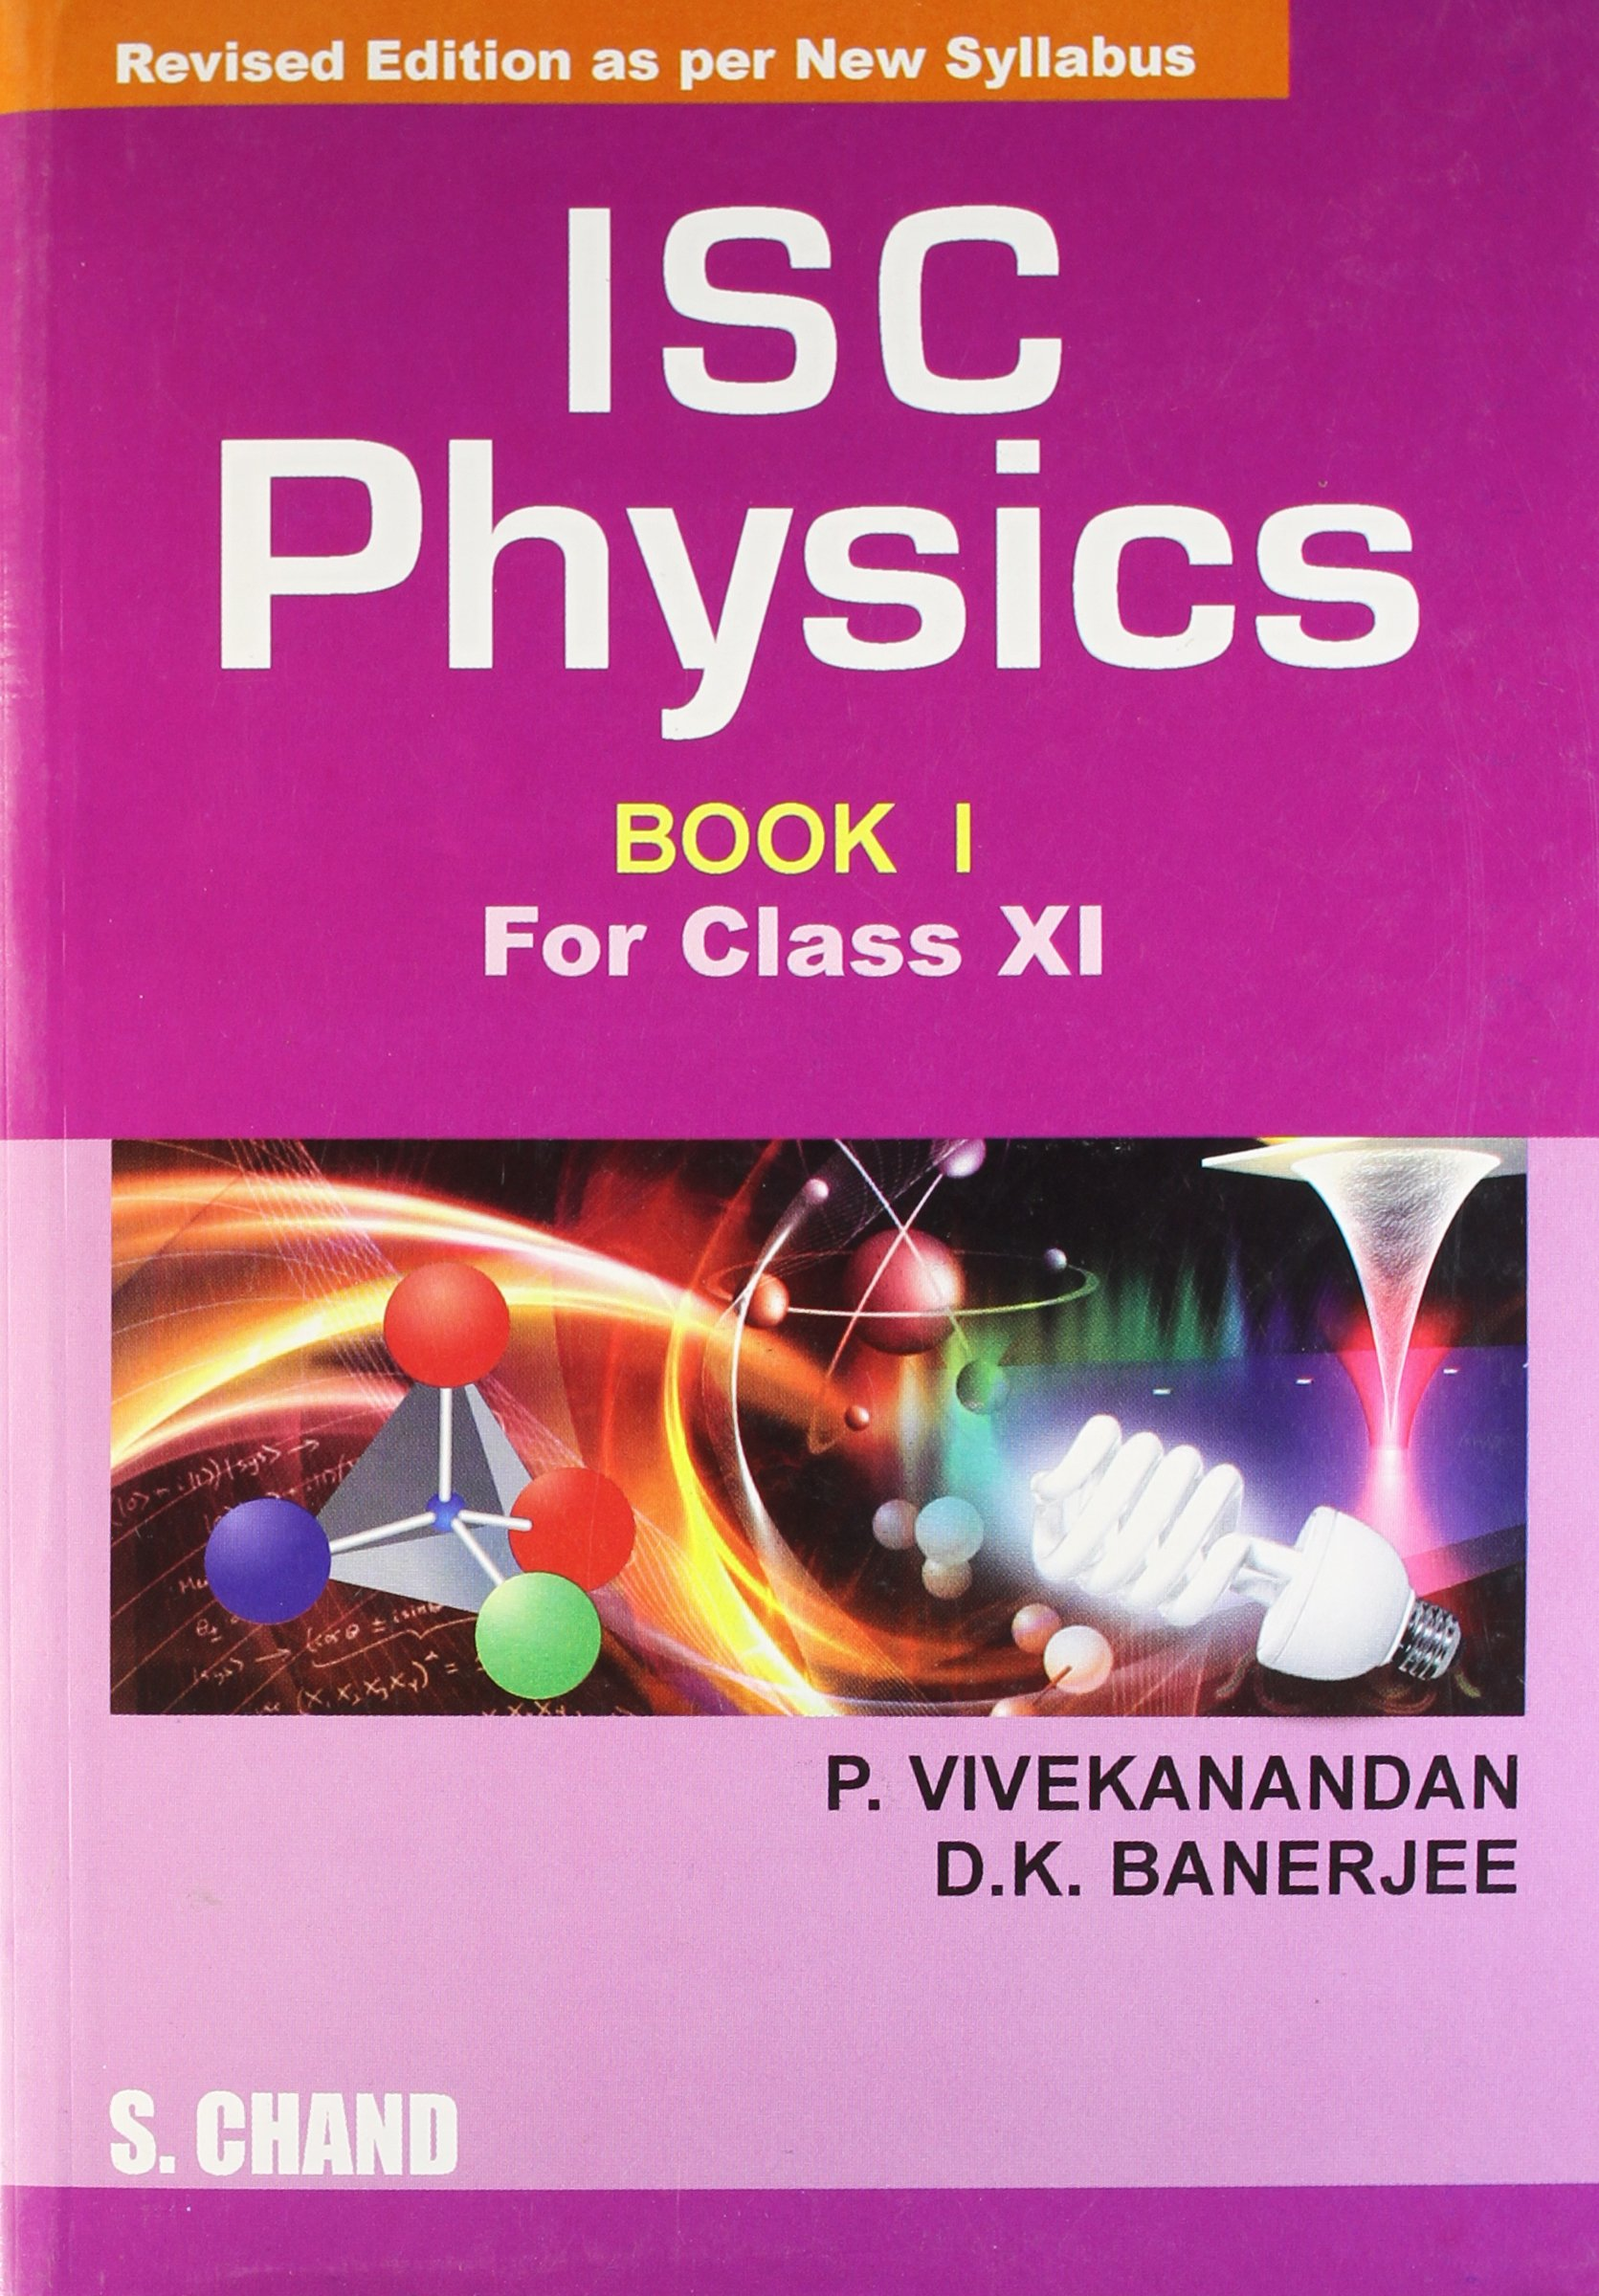 Amazon In Buy Isc Physics Book 1 For Class Xi Old Edition Book